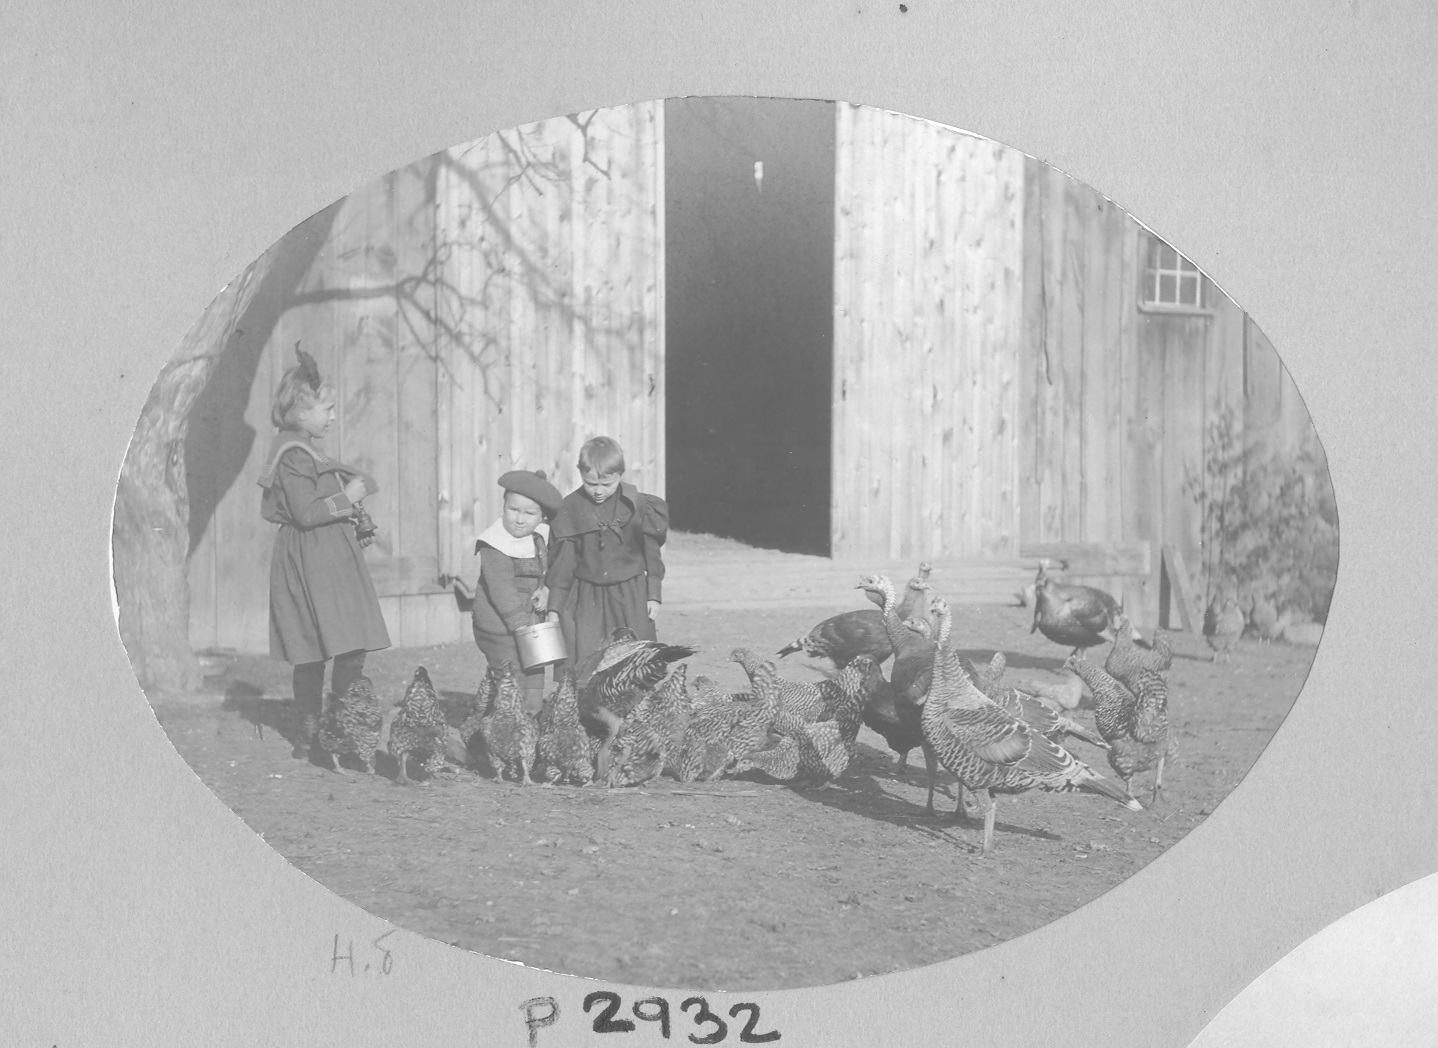 Image of children feeding chickens and turkeys at Craig Colony